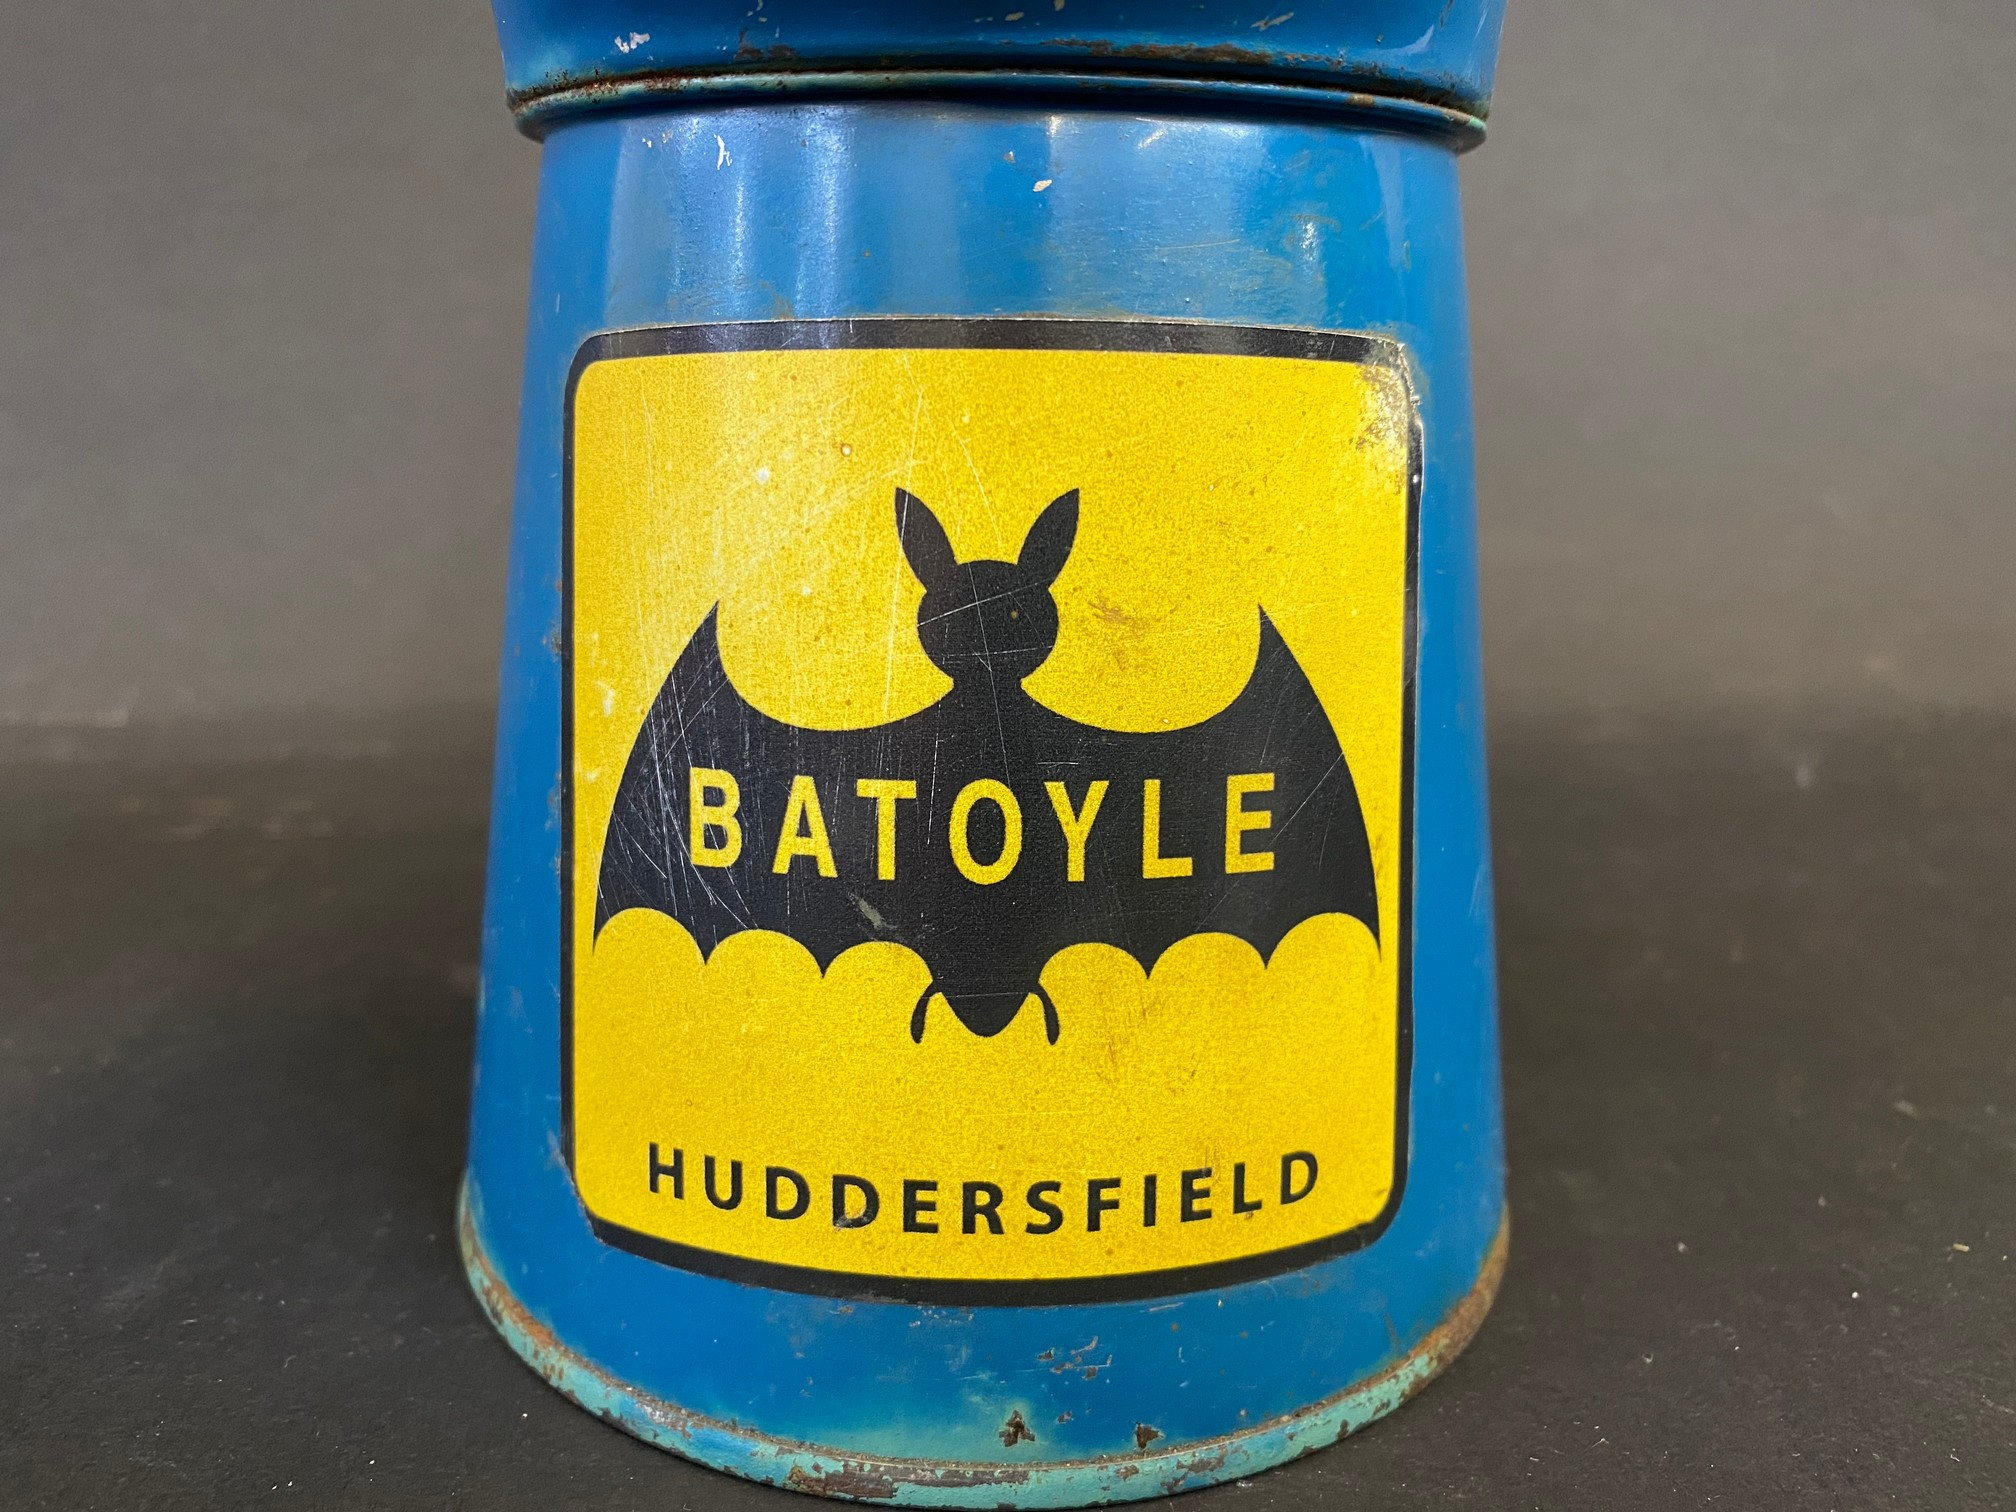 A Batoyle of Huddesfield pint measure dated 1977, in good condition. - Image 2 of 5